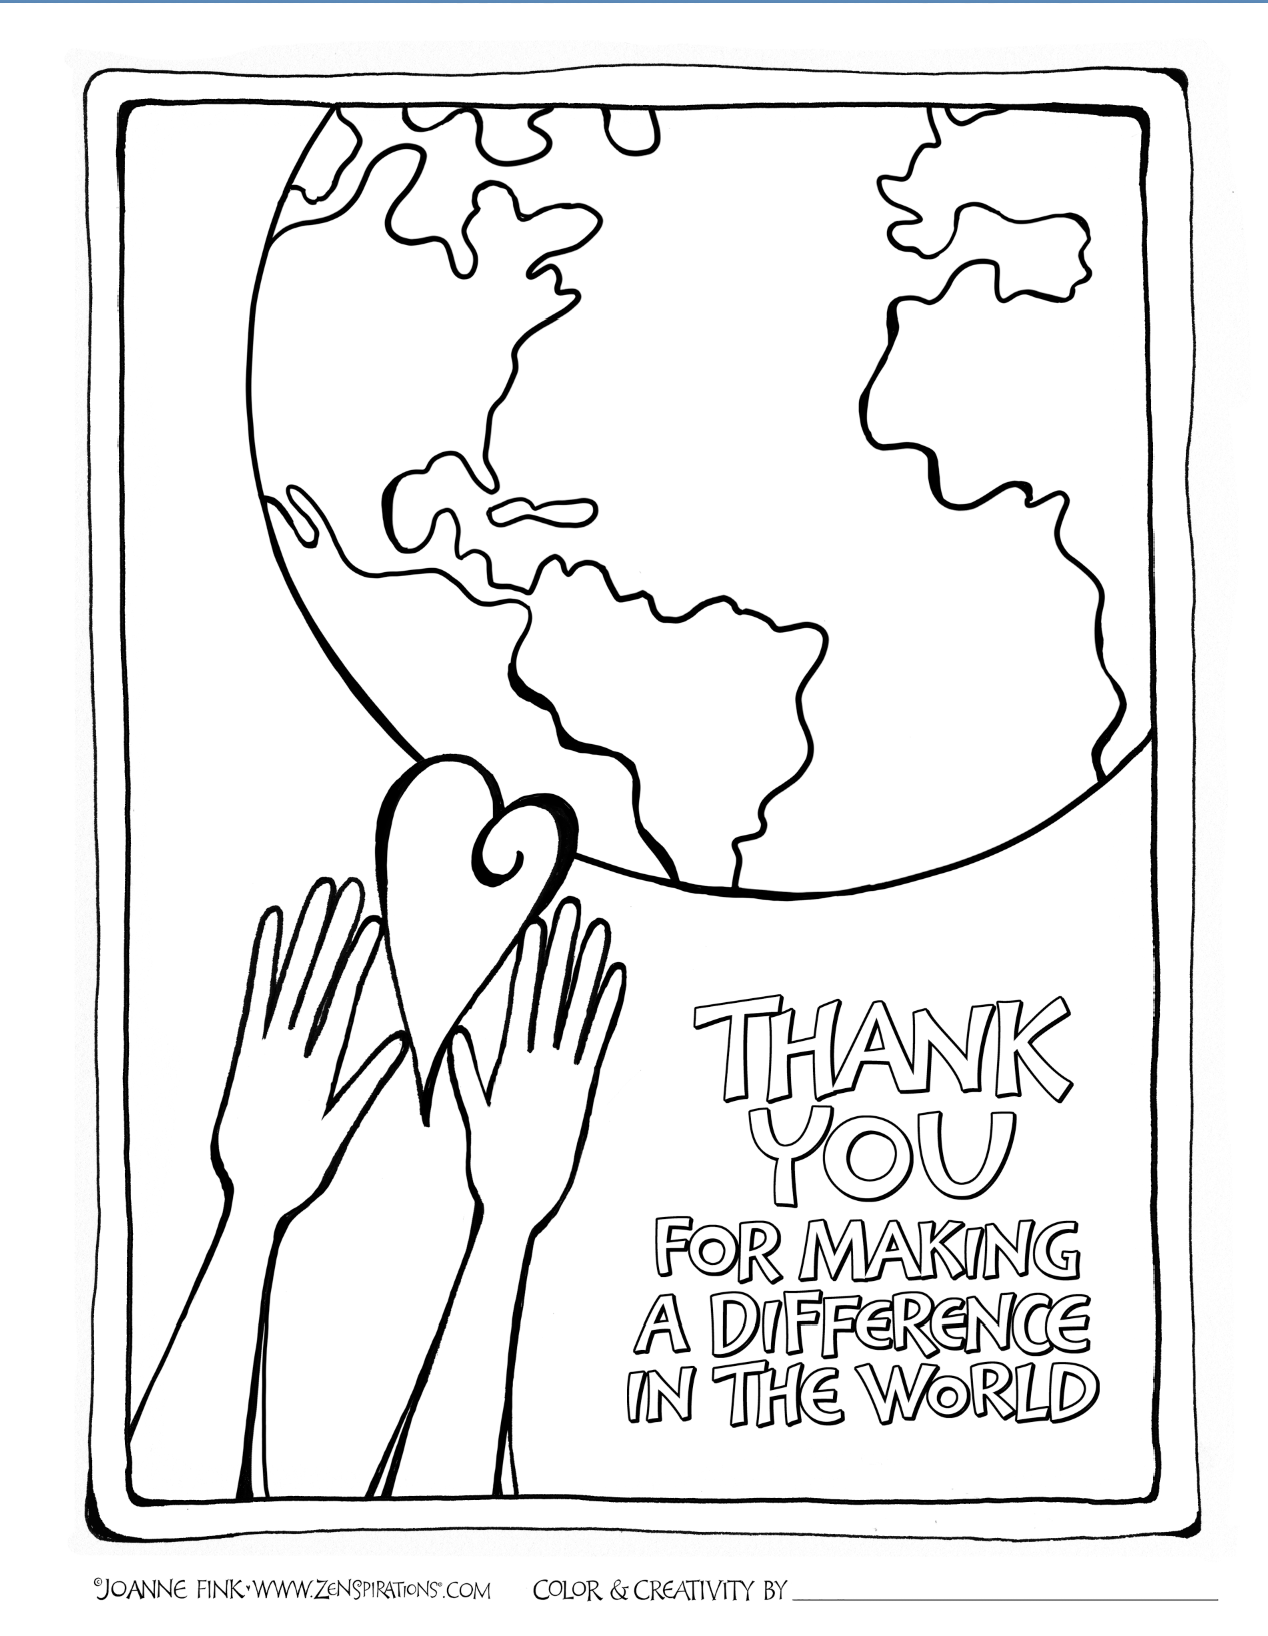 Expressions Of Hope Zenspirations Coloring Books Coloring Pages Expressions